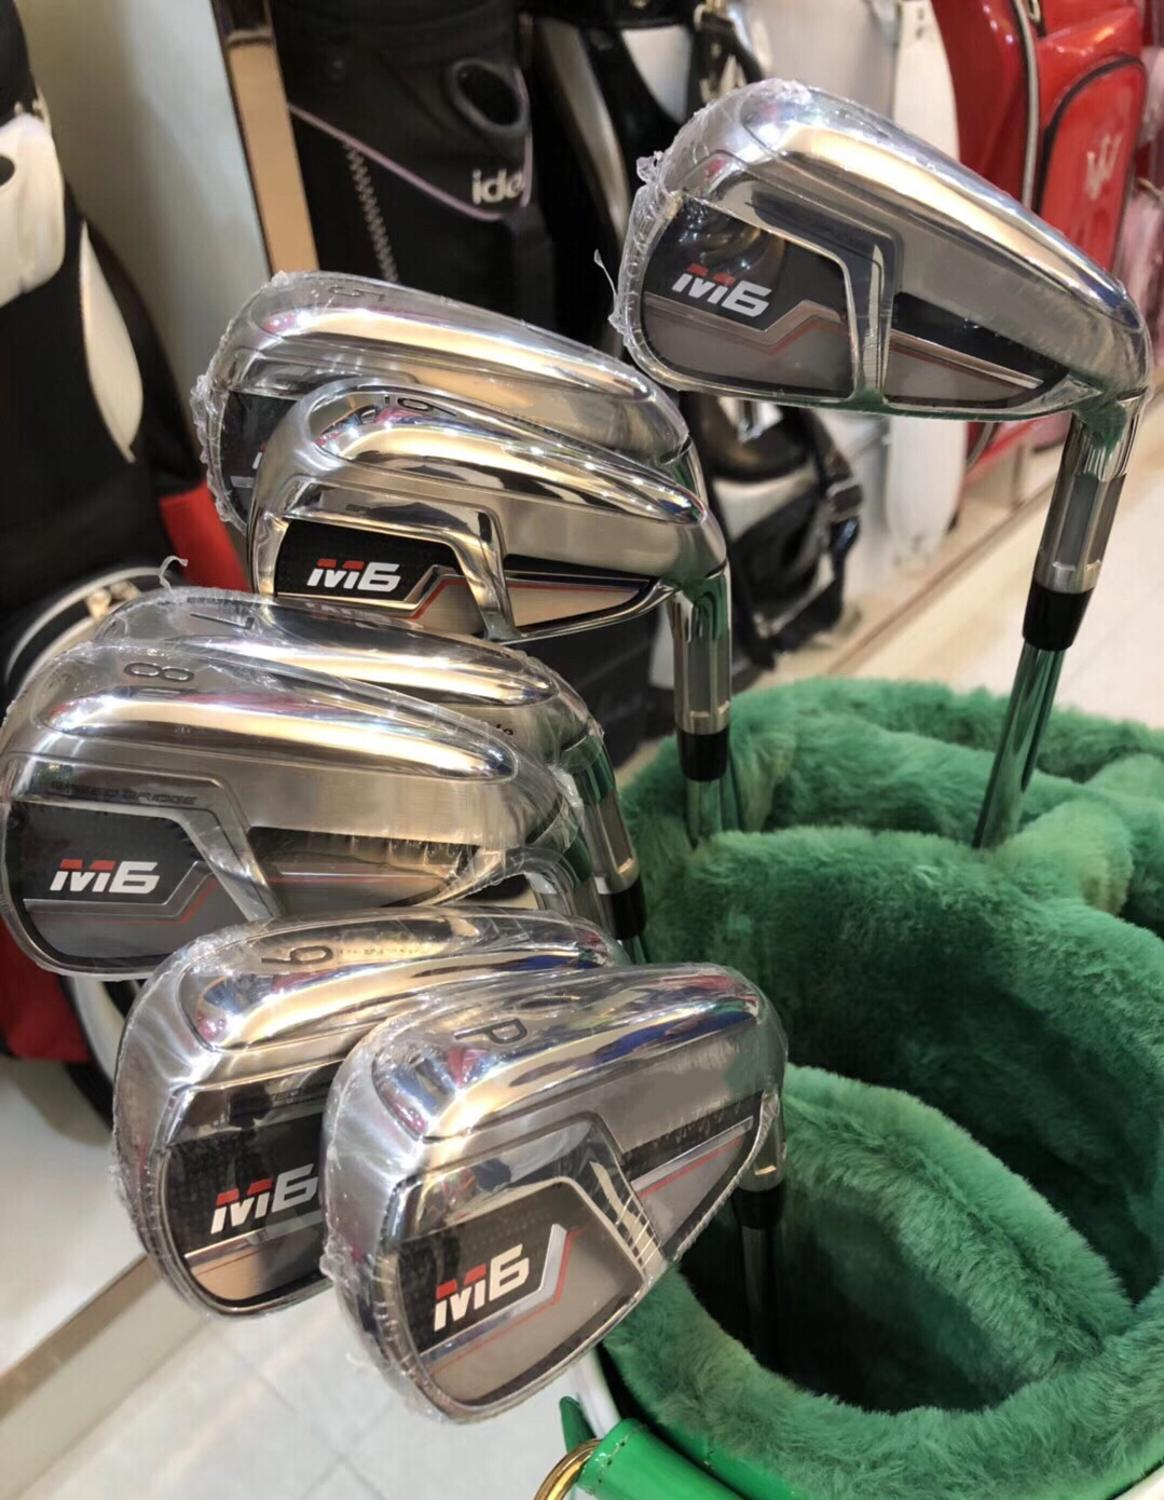 Brand New M6 Iron Set M6 Golf Irons M6 Golf Clubs 456789PS(8PCS) R/S Flex Steel/Graphite Shaft With Head Cover M6 Golf Irons